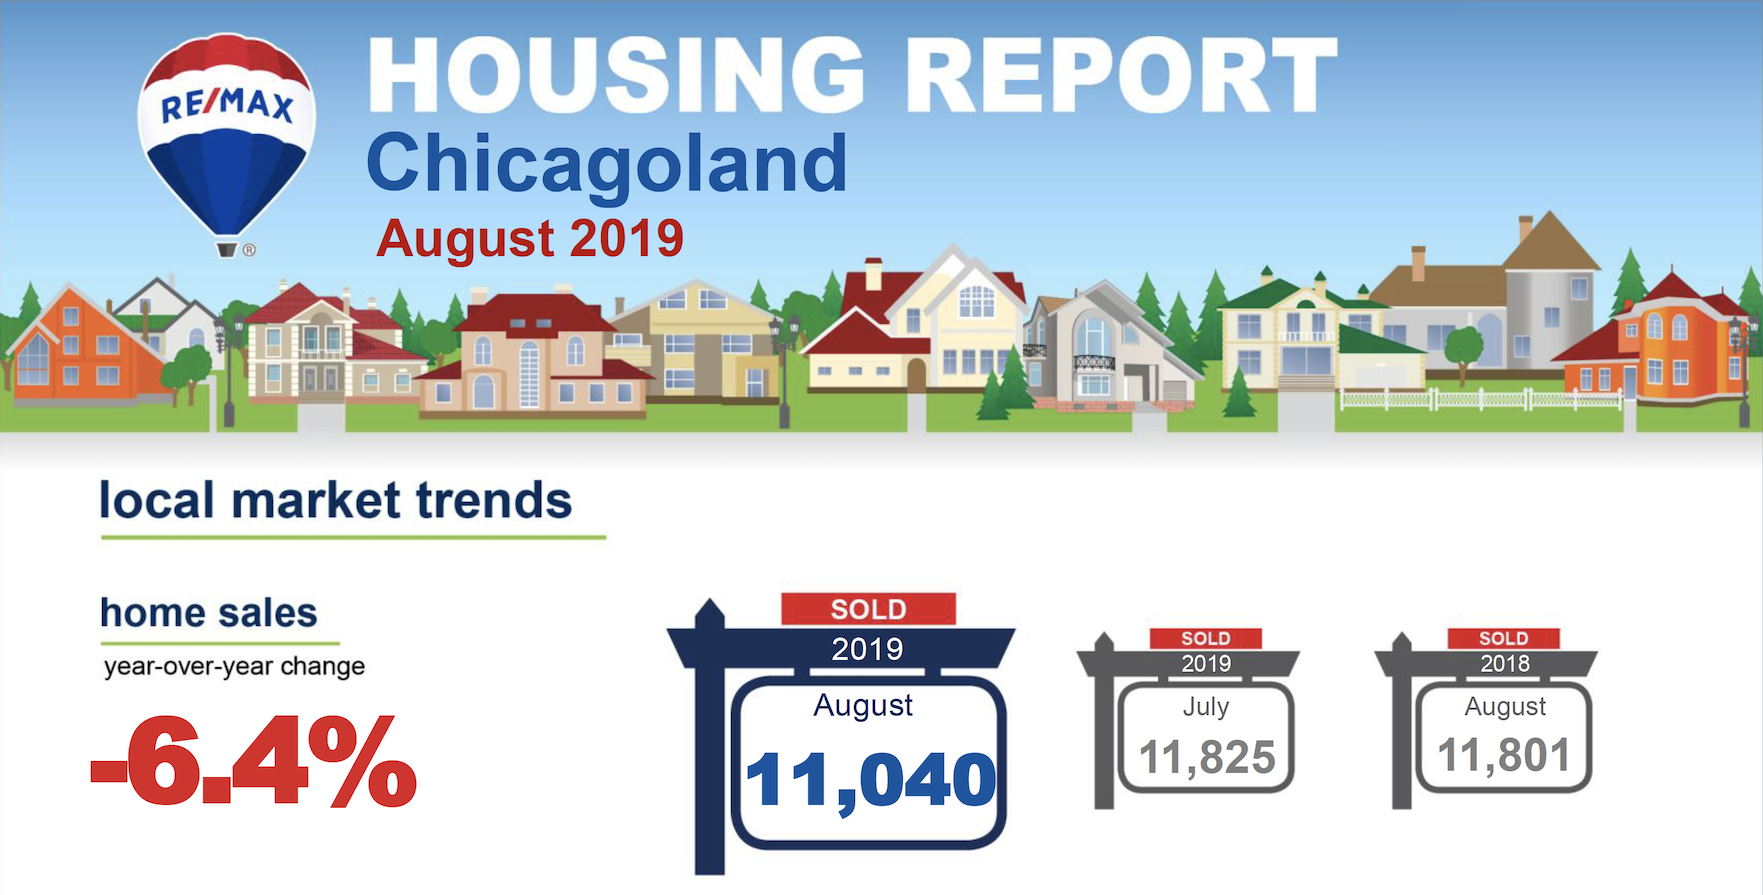 data from RE/MAX Housing Report